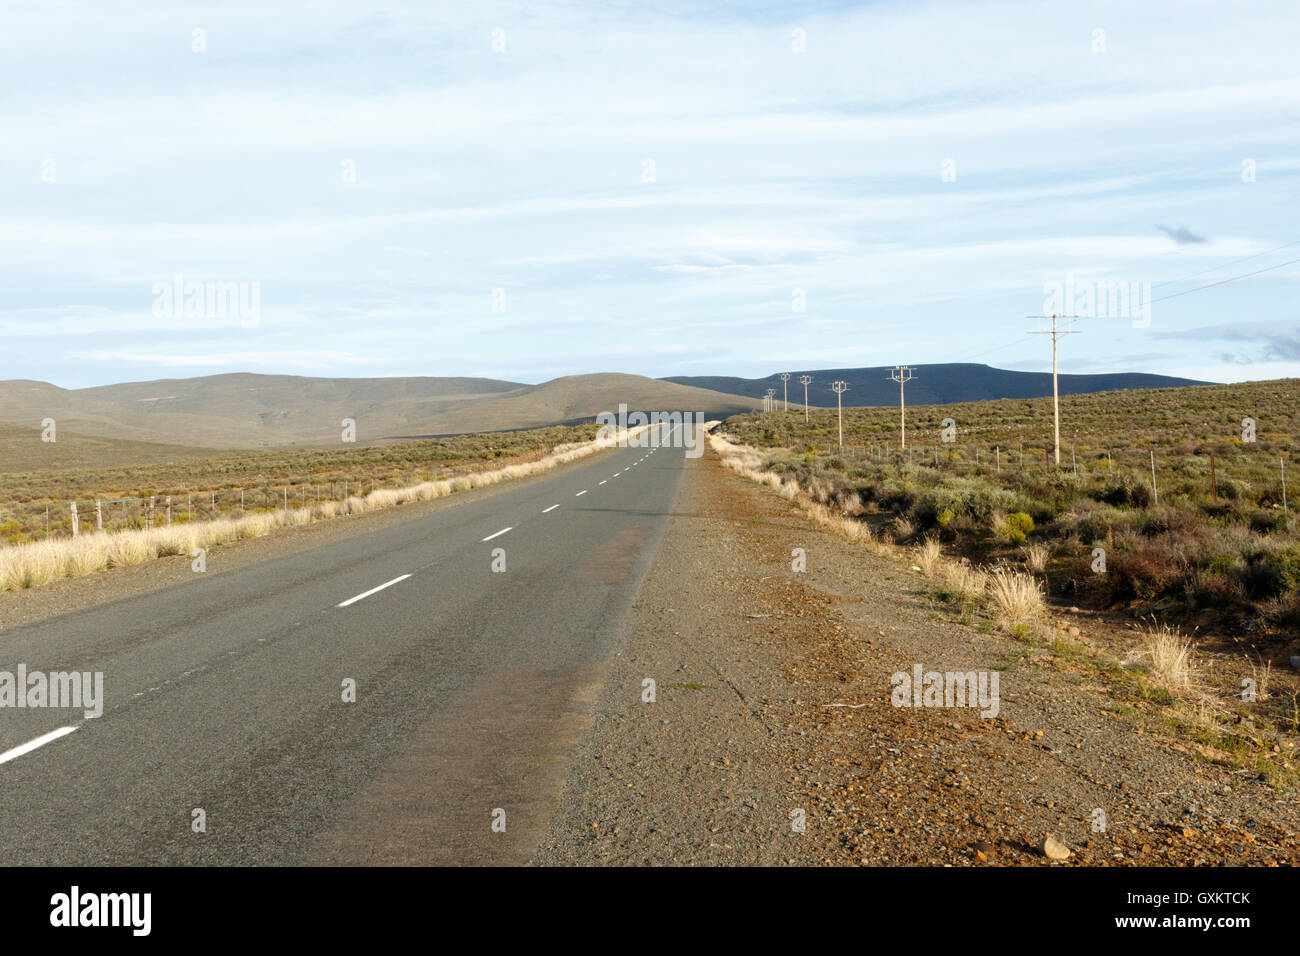 The Road to Sutherland -- Sutherland is a town with about 2,841 inhabitants in the Northern Cape province of South - Stock Image